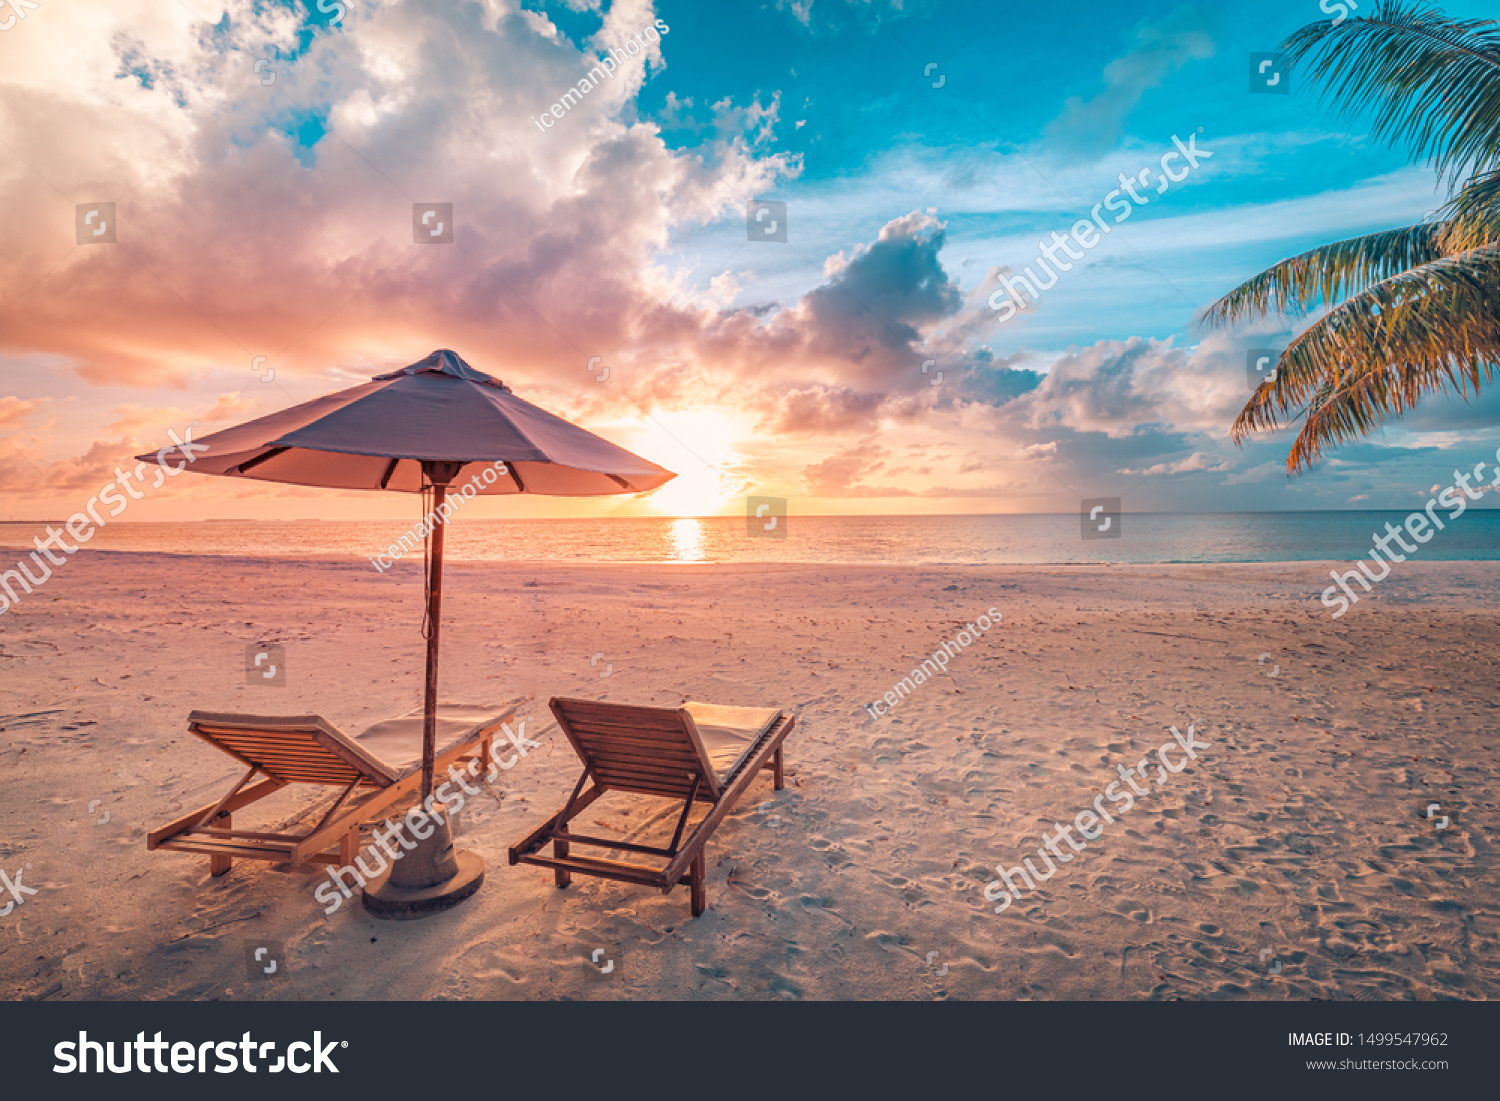 Beautiful tropical sunset scenery, two sun beds, loungers, umbrella under palm tree. White sand, sea view with horizon, colorful twilight sky, calmness and relaxation. Inspirational beach resort hotel #1499547962